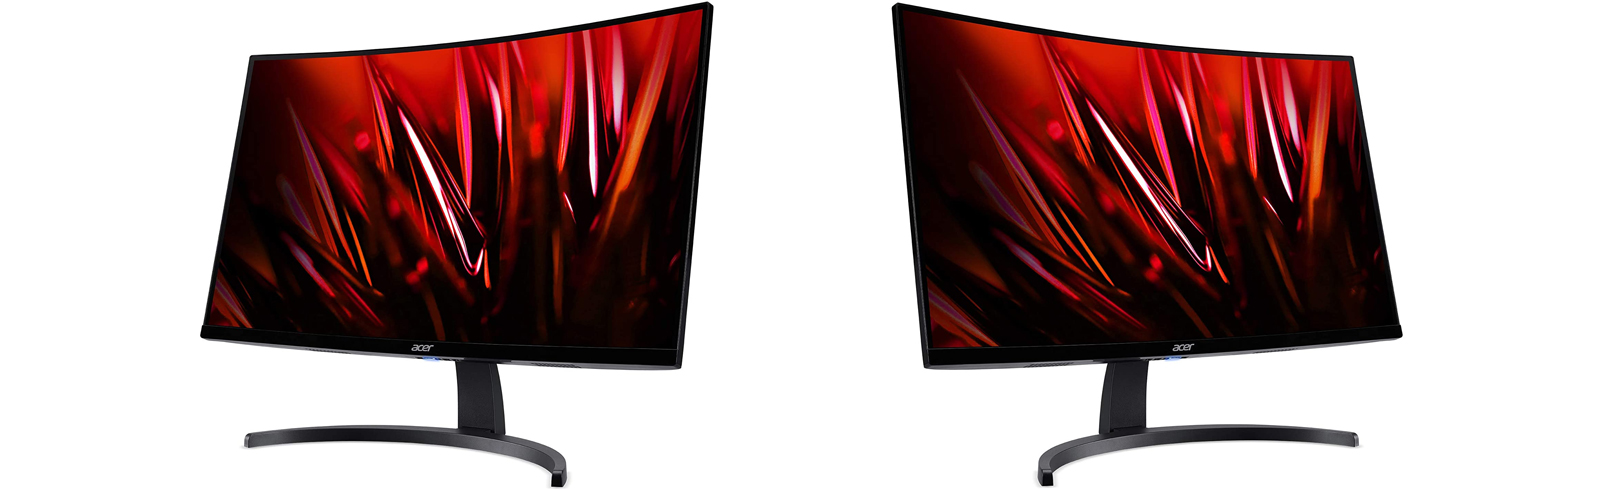 """The Acer ED273U Abmiipx with a 27"""" QHD curved VA panel goes on sale"""